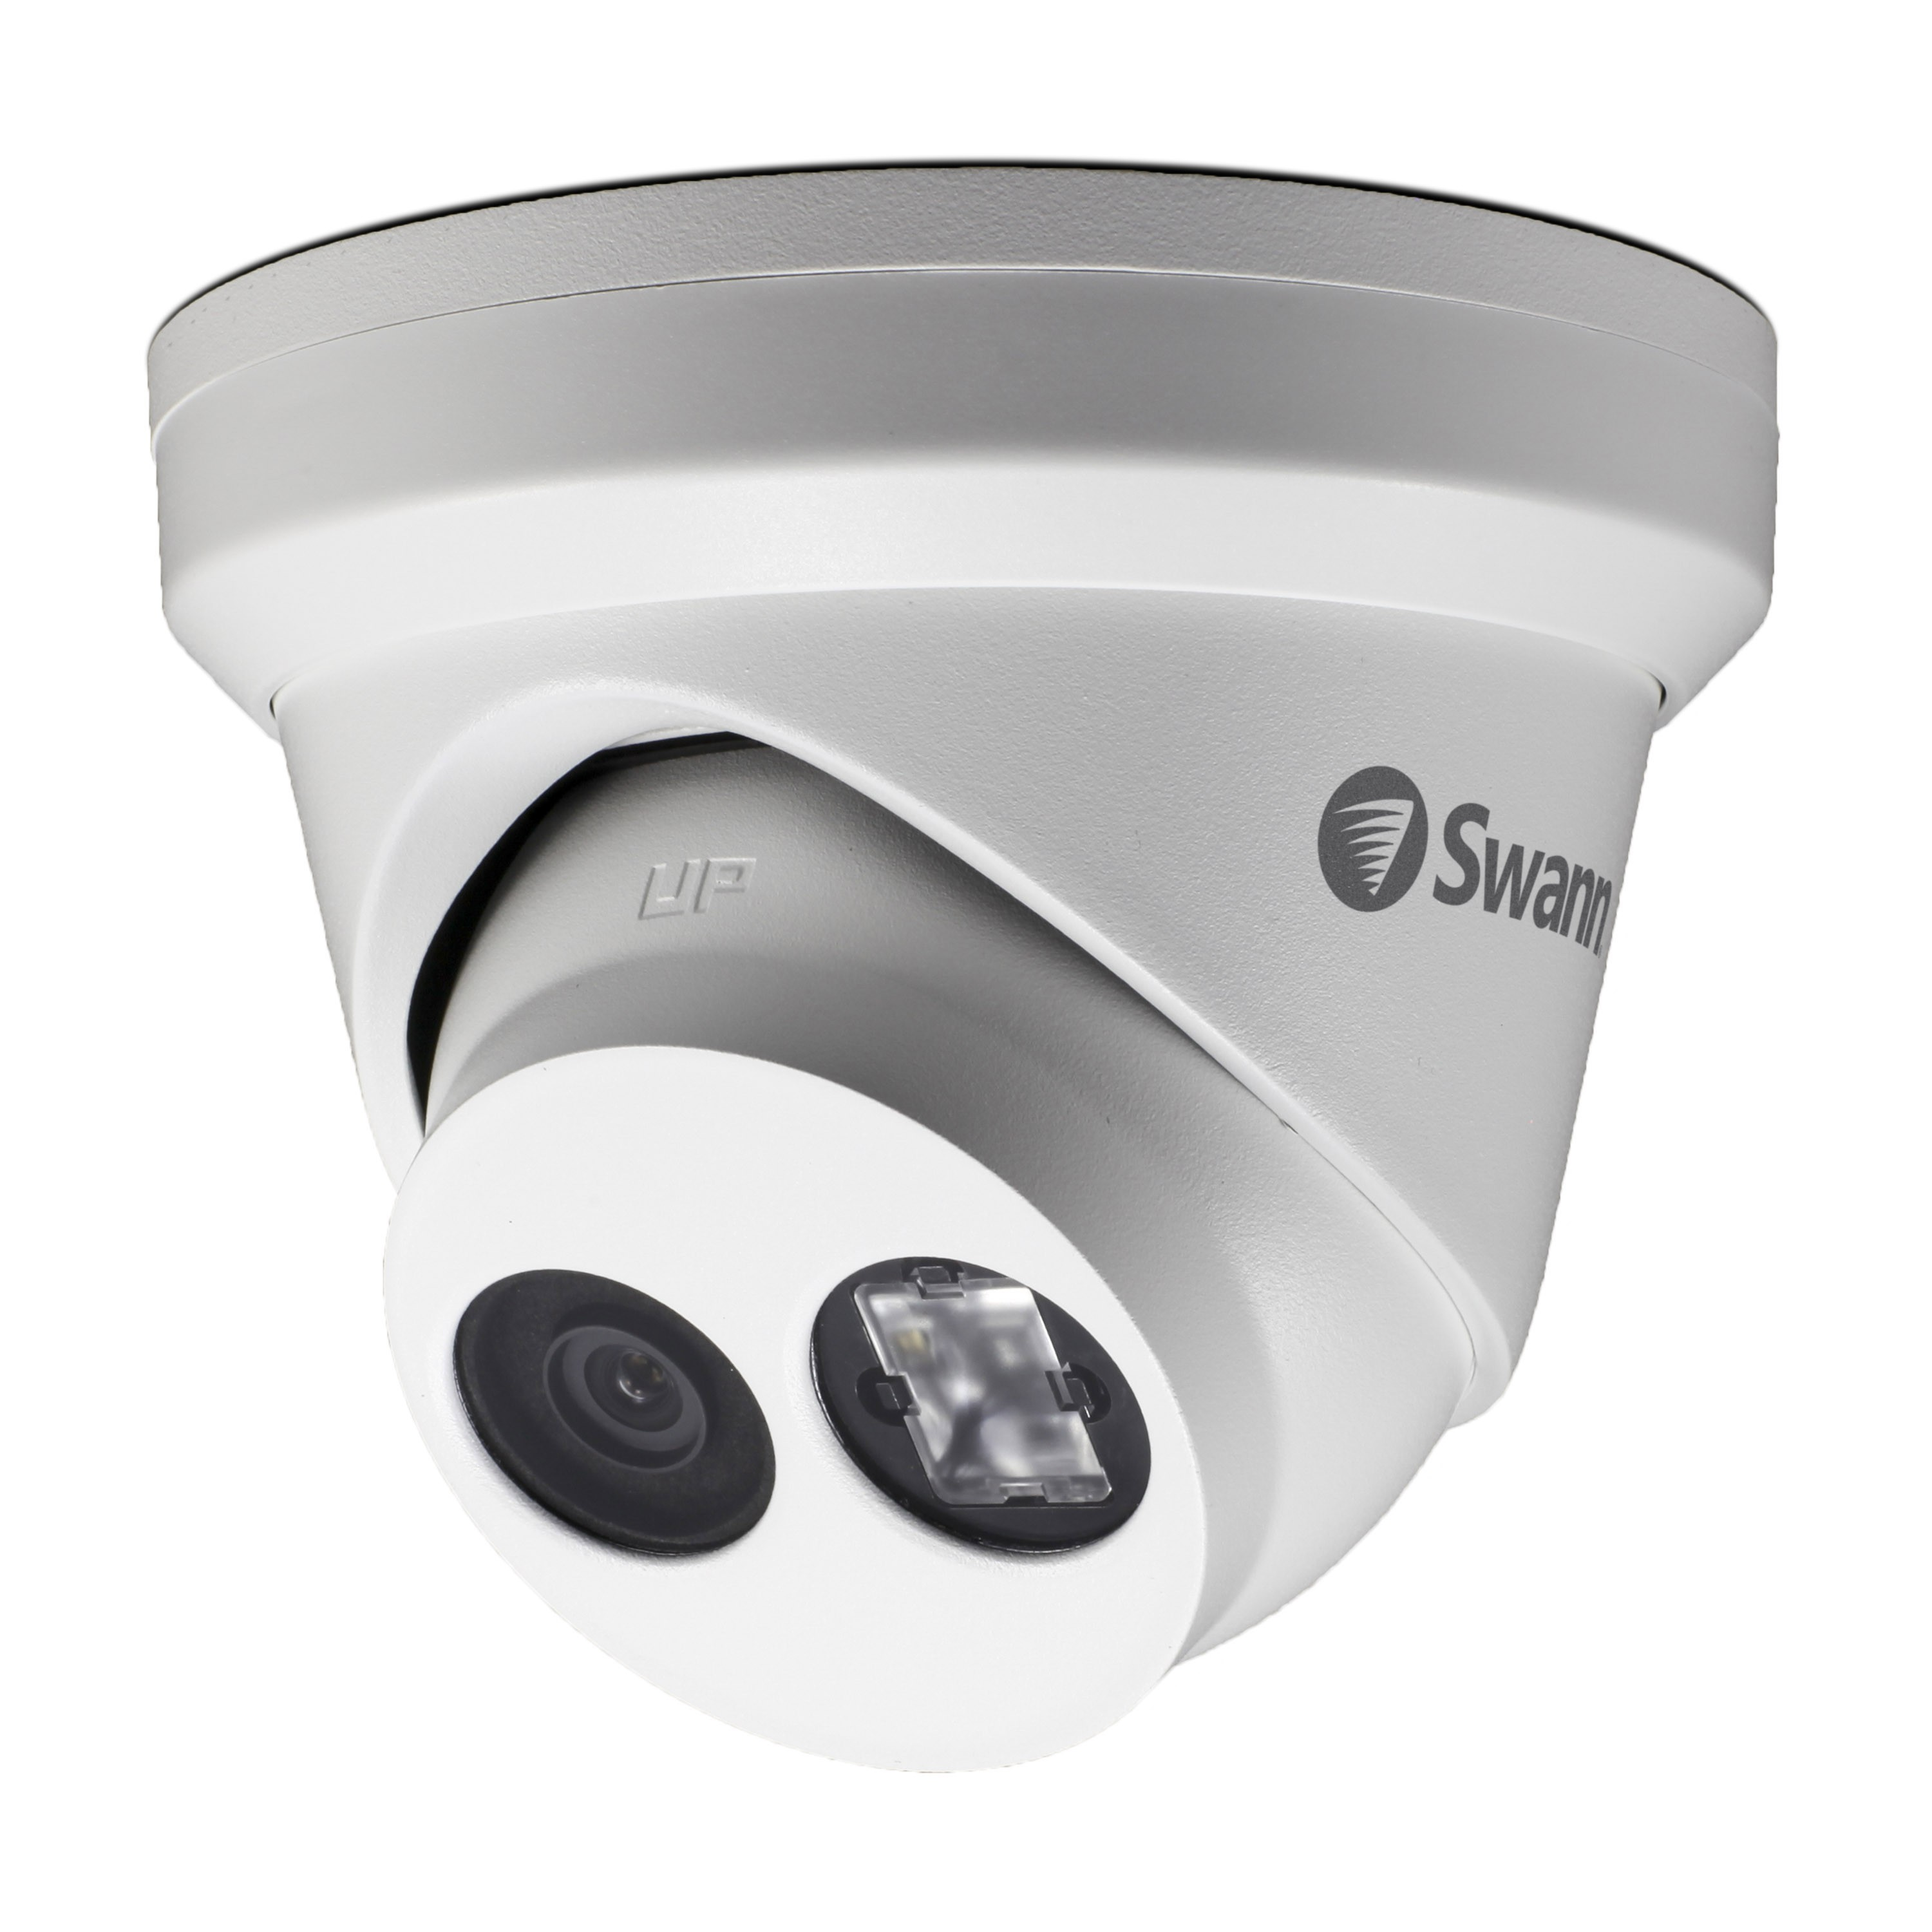 SWNHD-881CAM Swann 4K Ultra HD Dome Outdoor Security Camera with EXIR LED IR Night Vision - NHD-881 -